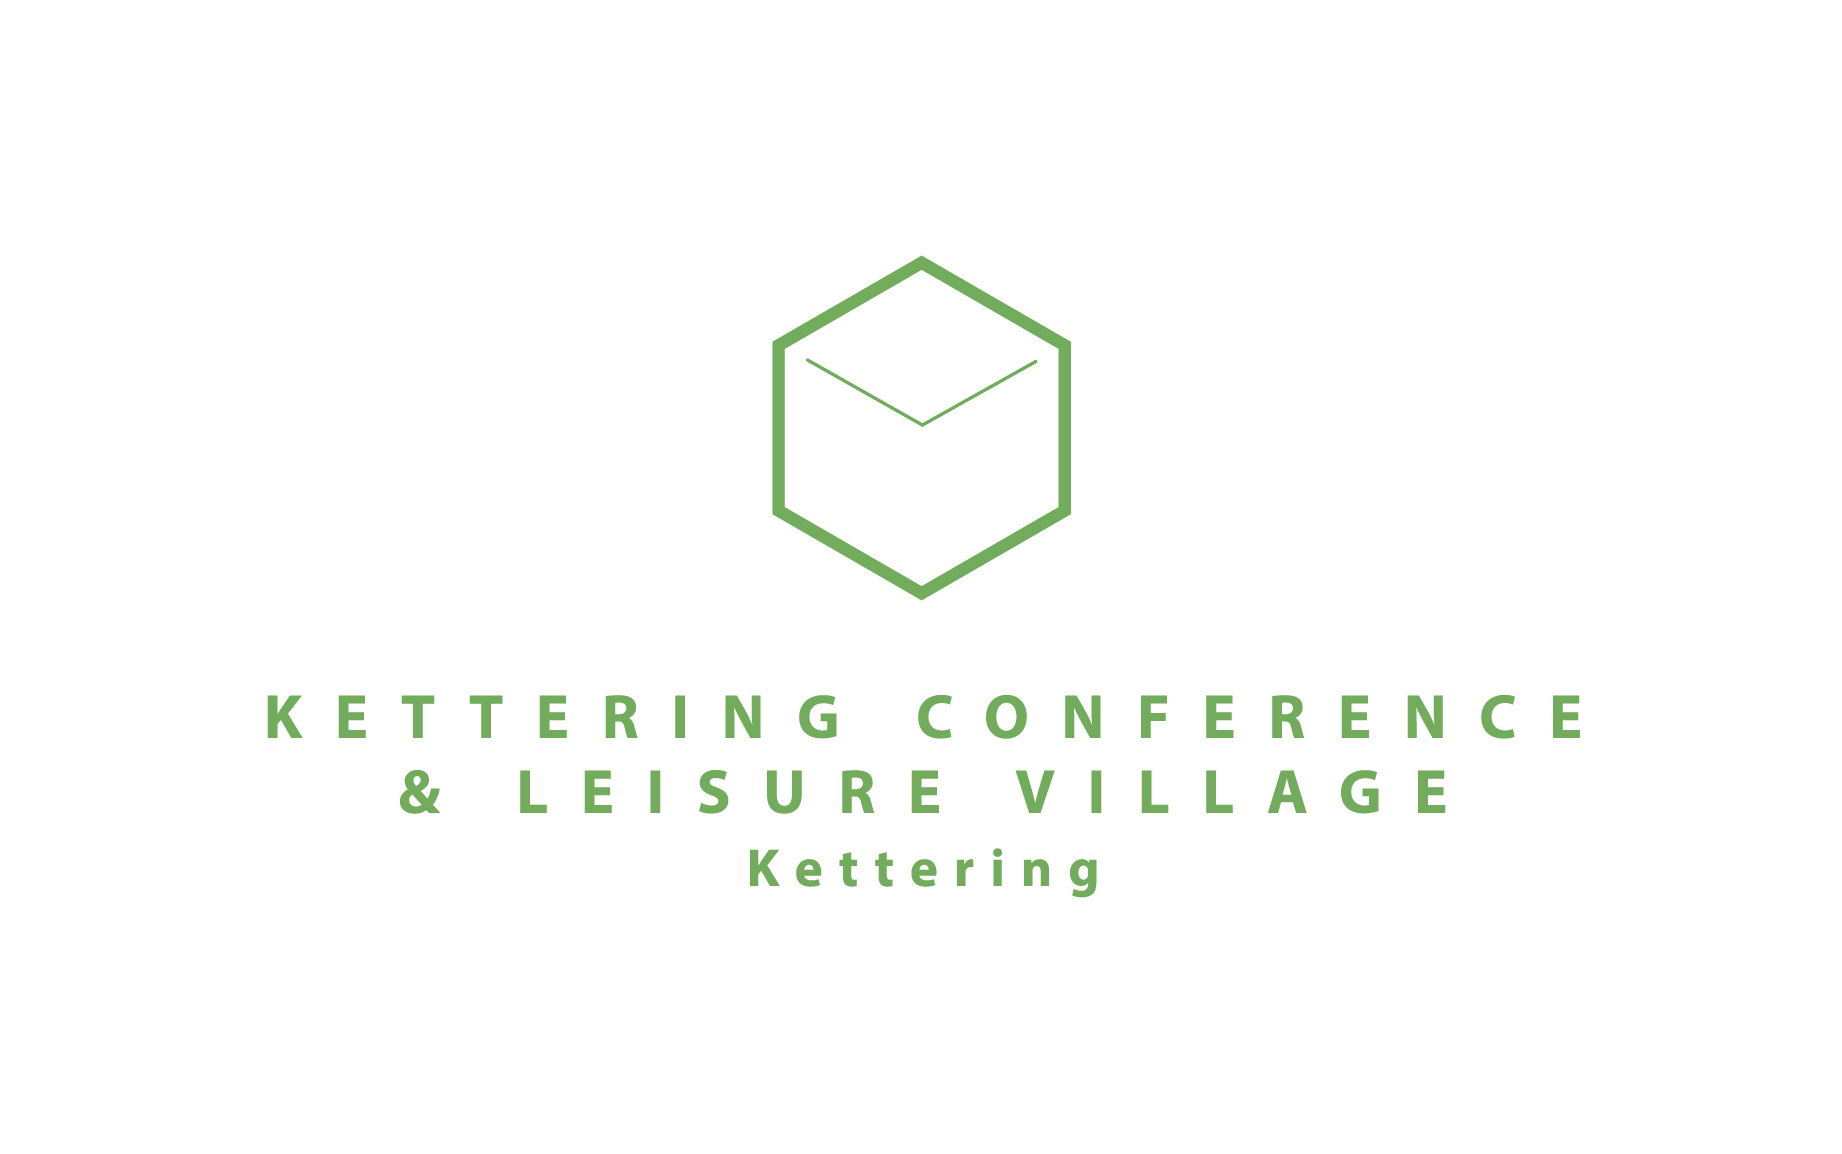 Kettering Conference & Leisure Village